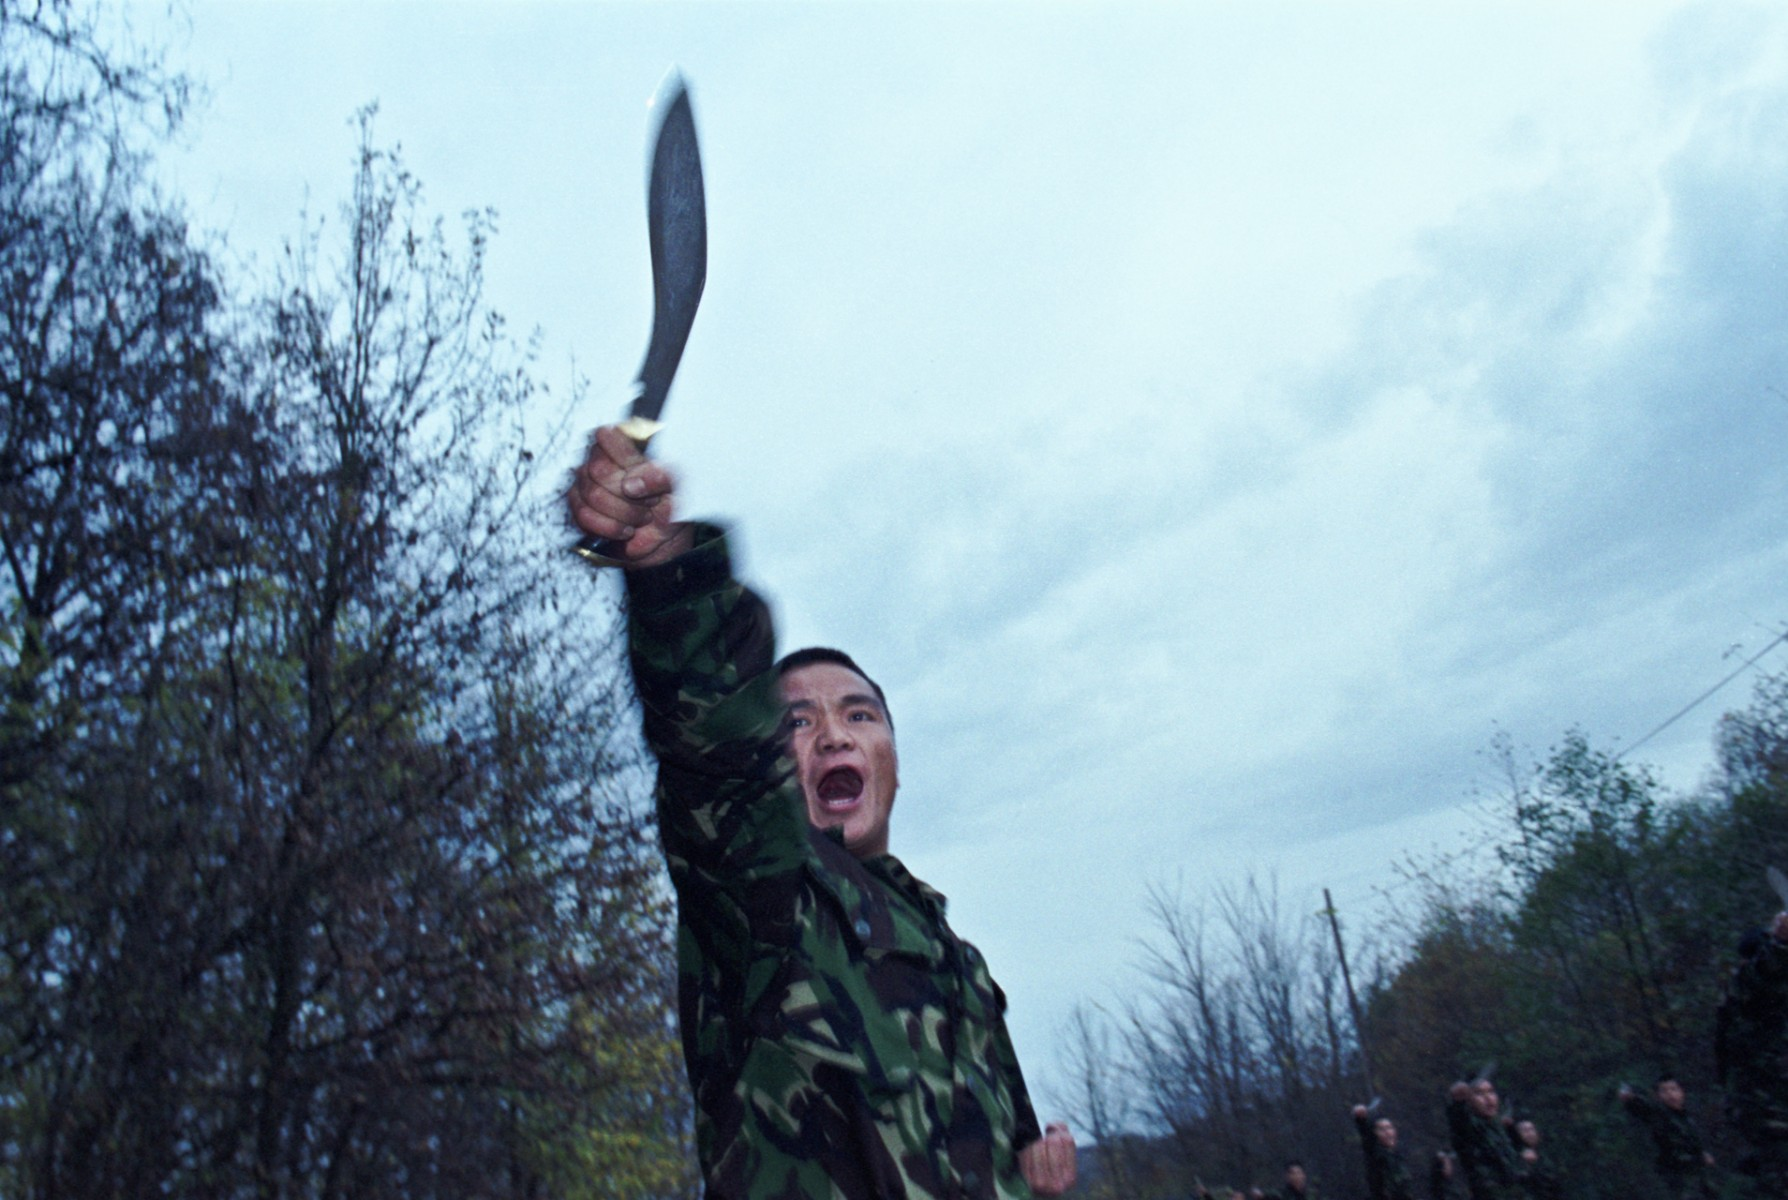 Combat training with kukri, Bosnia